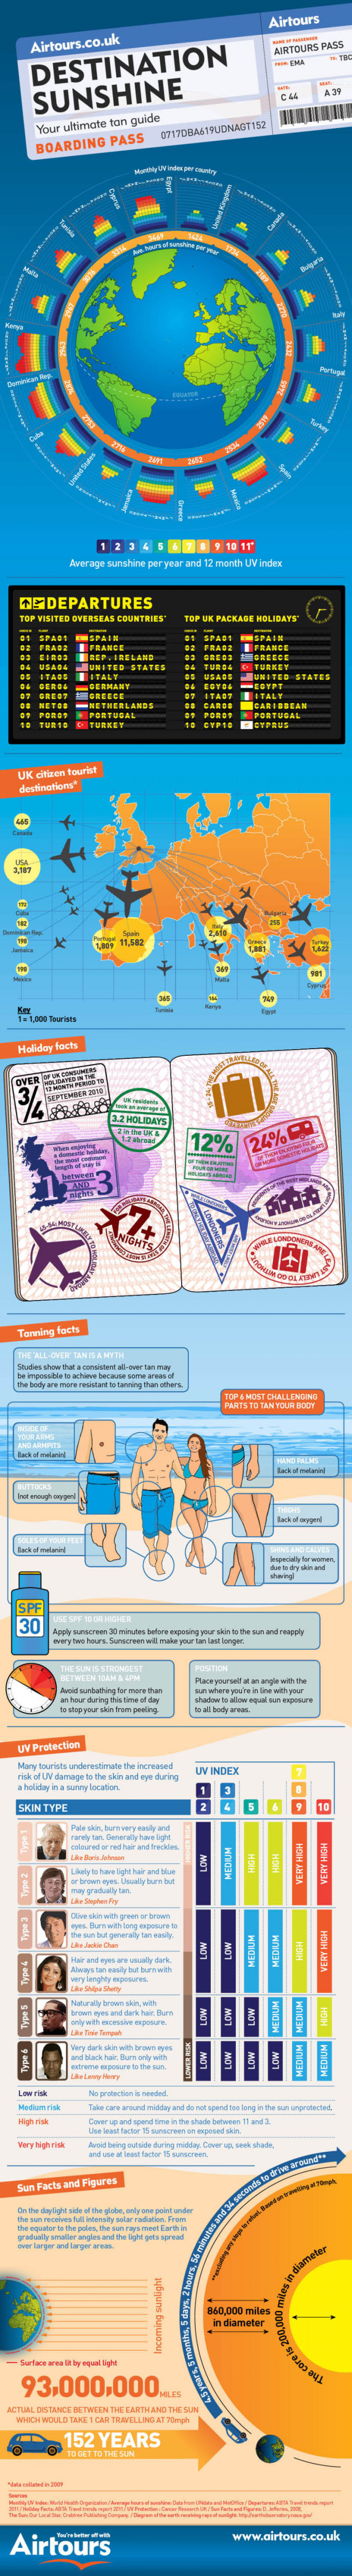 Destination Sunshine Infographic